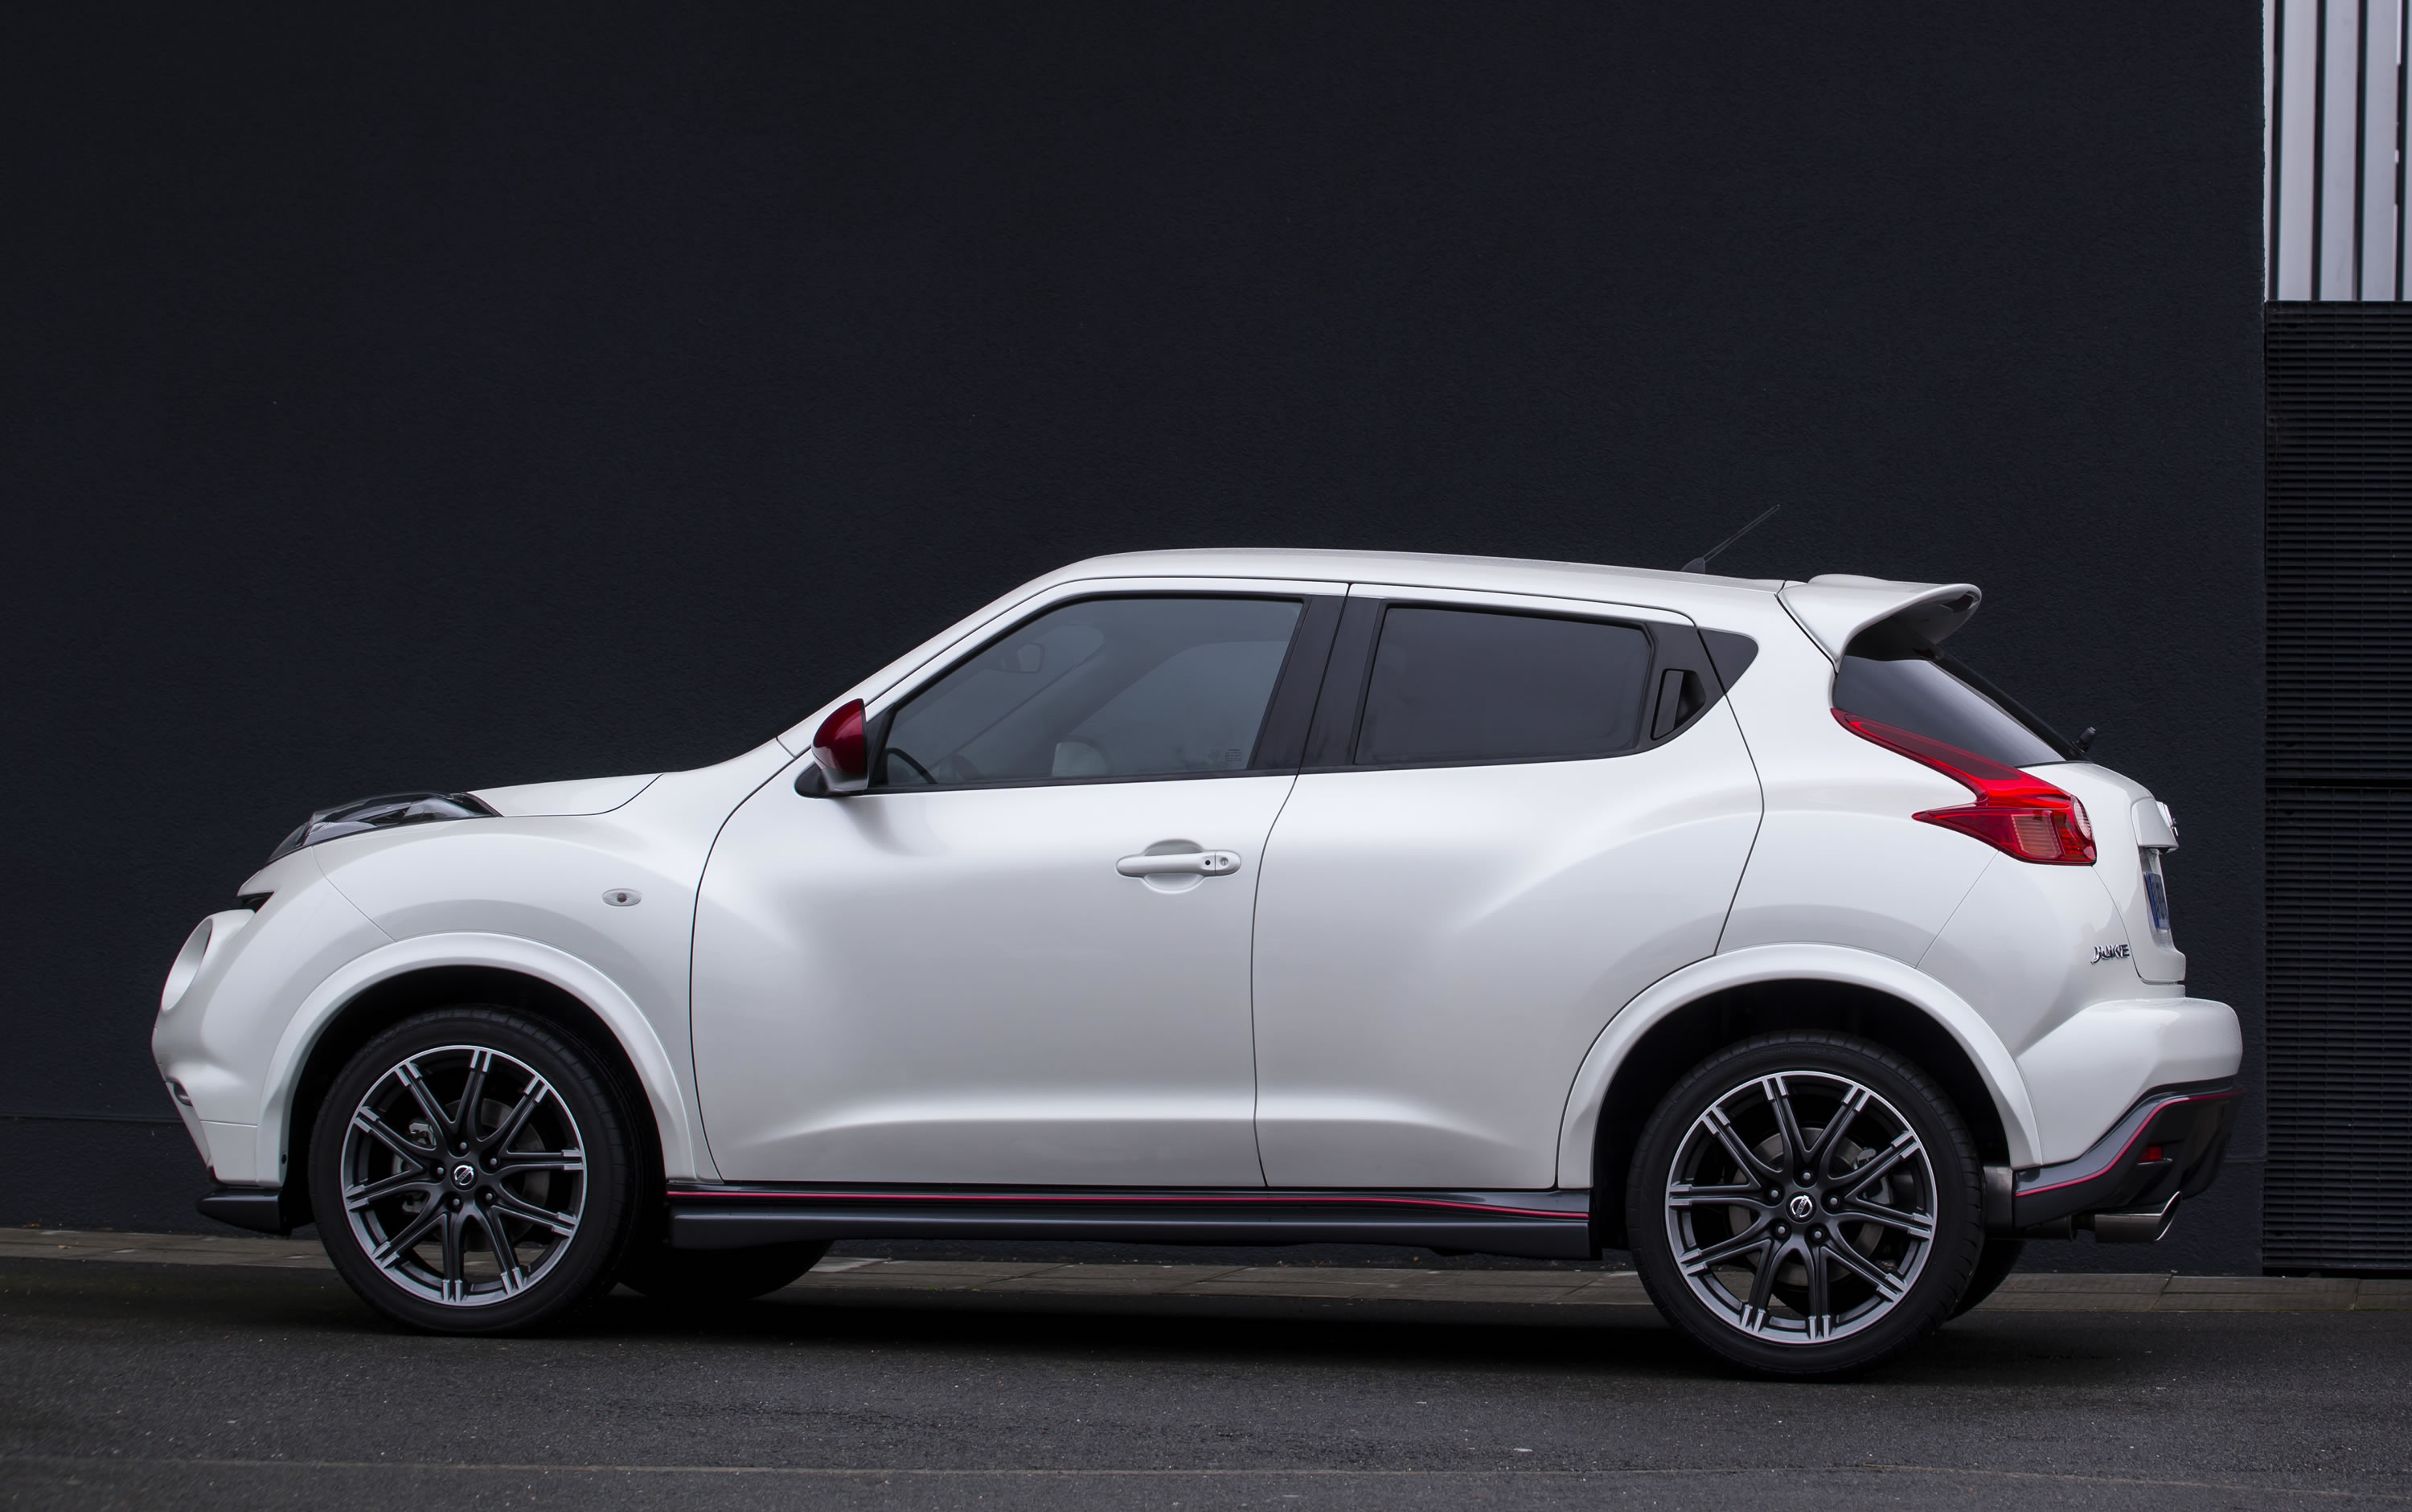 2014 nissan juke nismo price specs nissan usa auto design tech. Black Bedroom Furniture Sets. Home Design Ideas